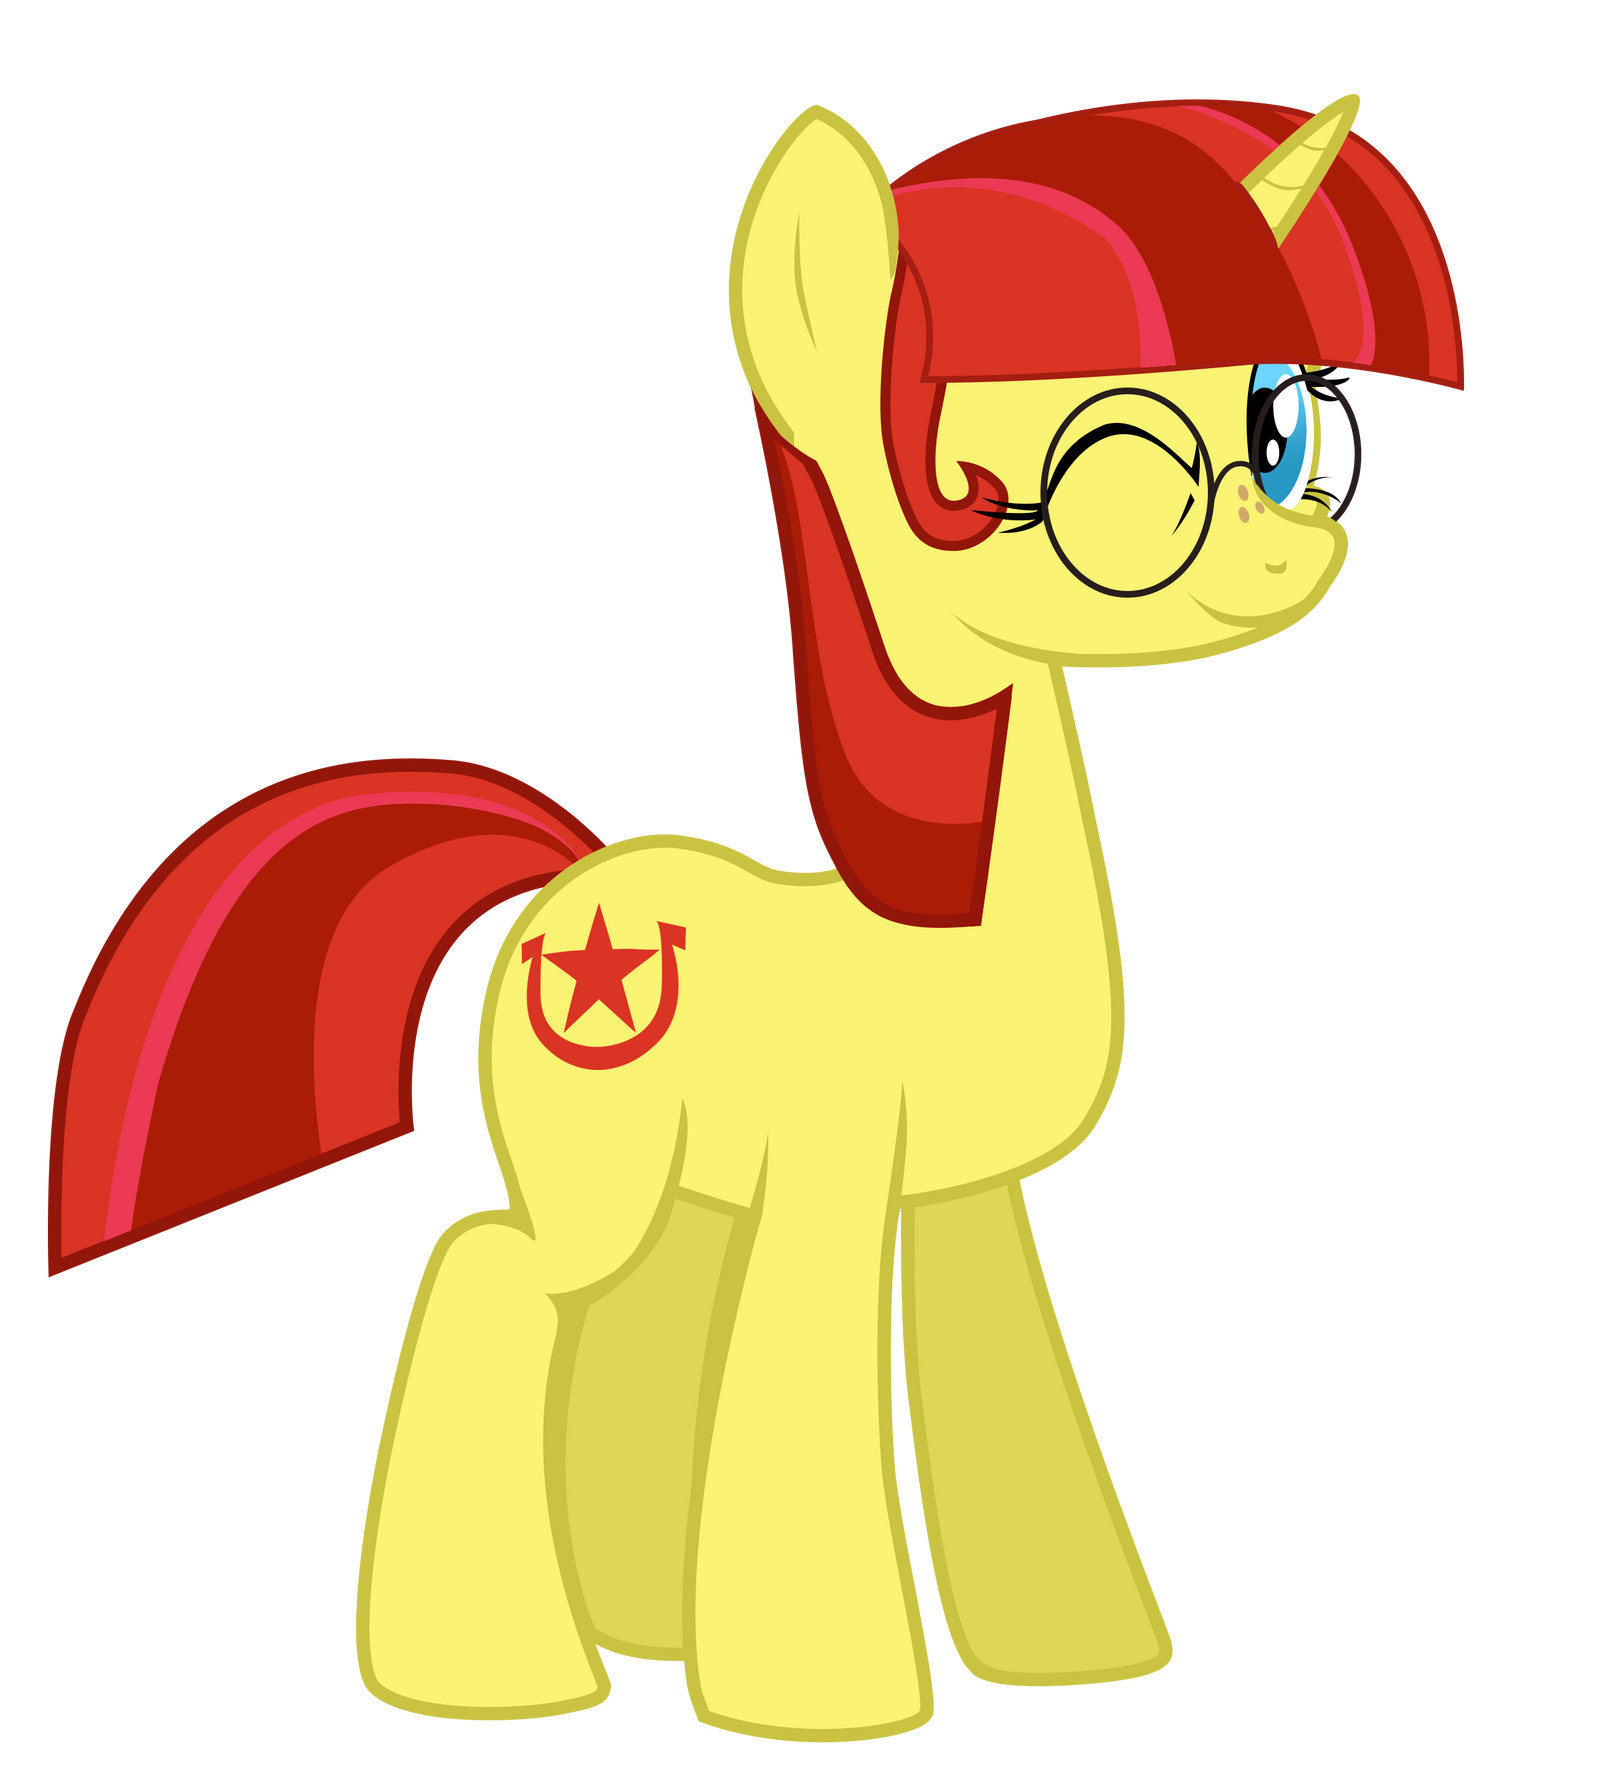 lefty_pone_by_aaronmk-dbi5ipt.png